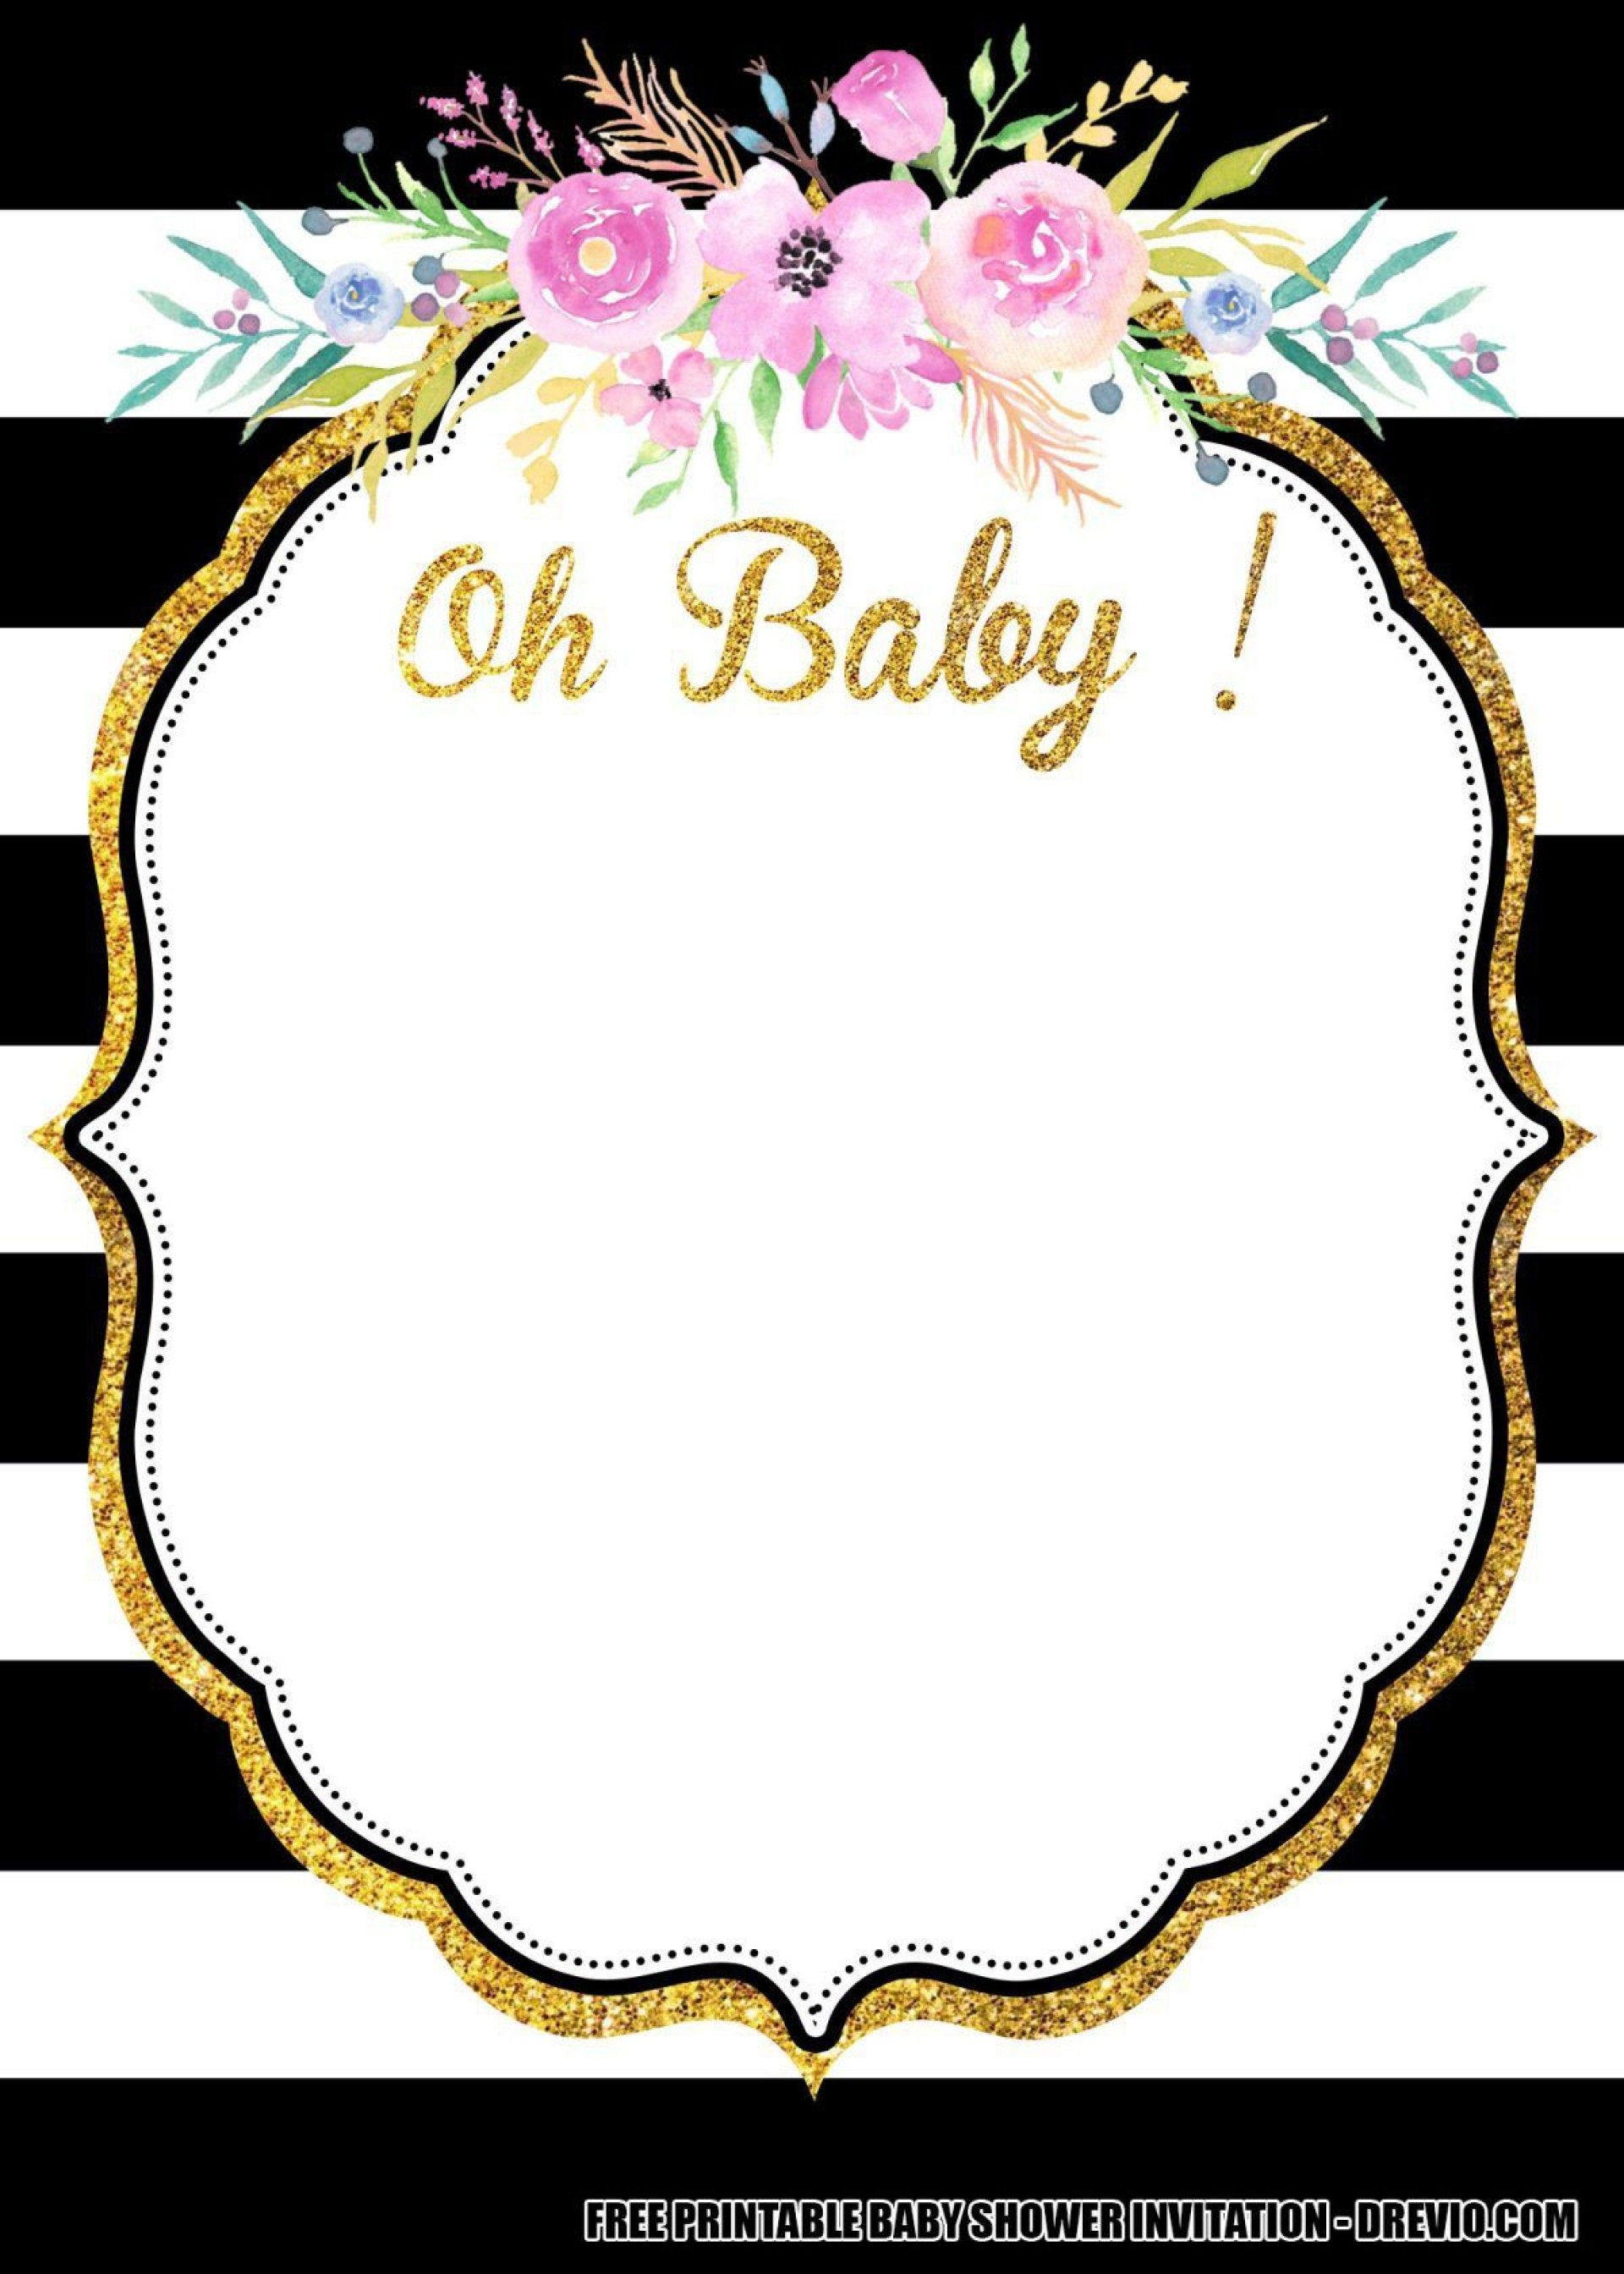 010 Incredible Baby Shower Invitation Card Template Free Download Inspiration  IndianFull